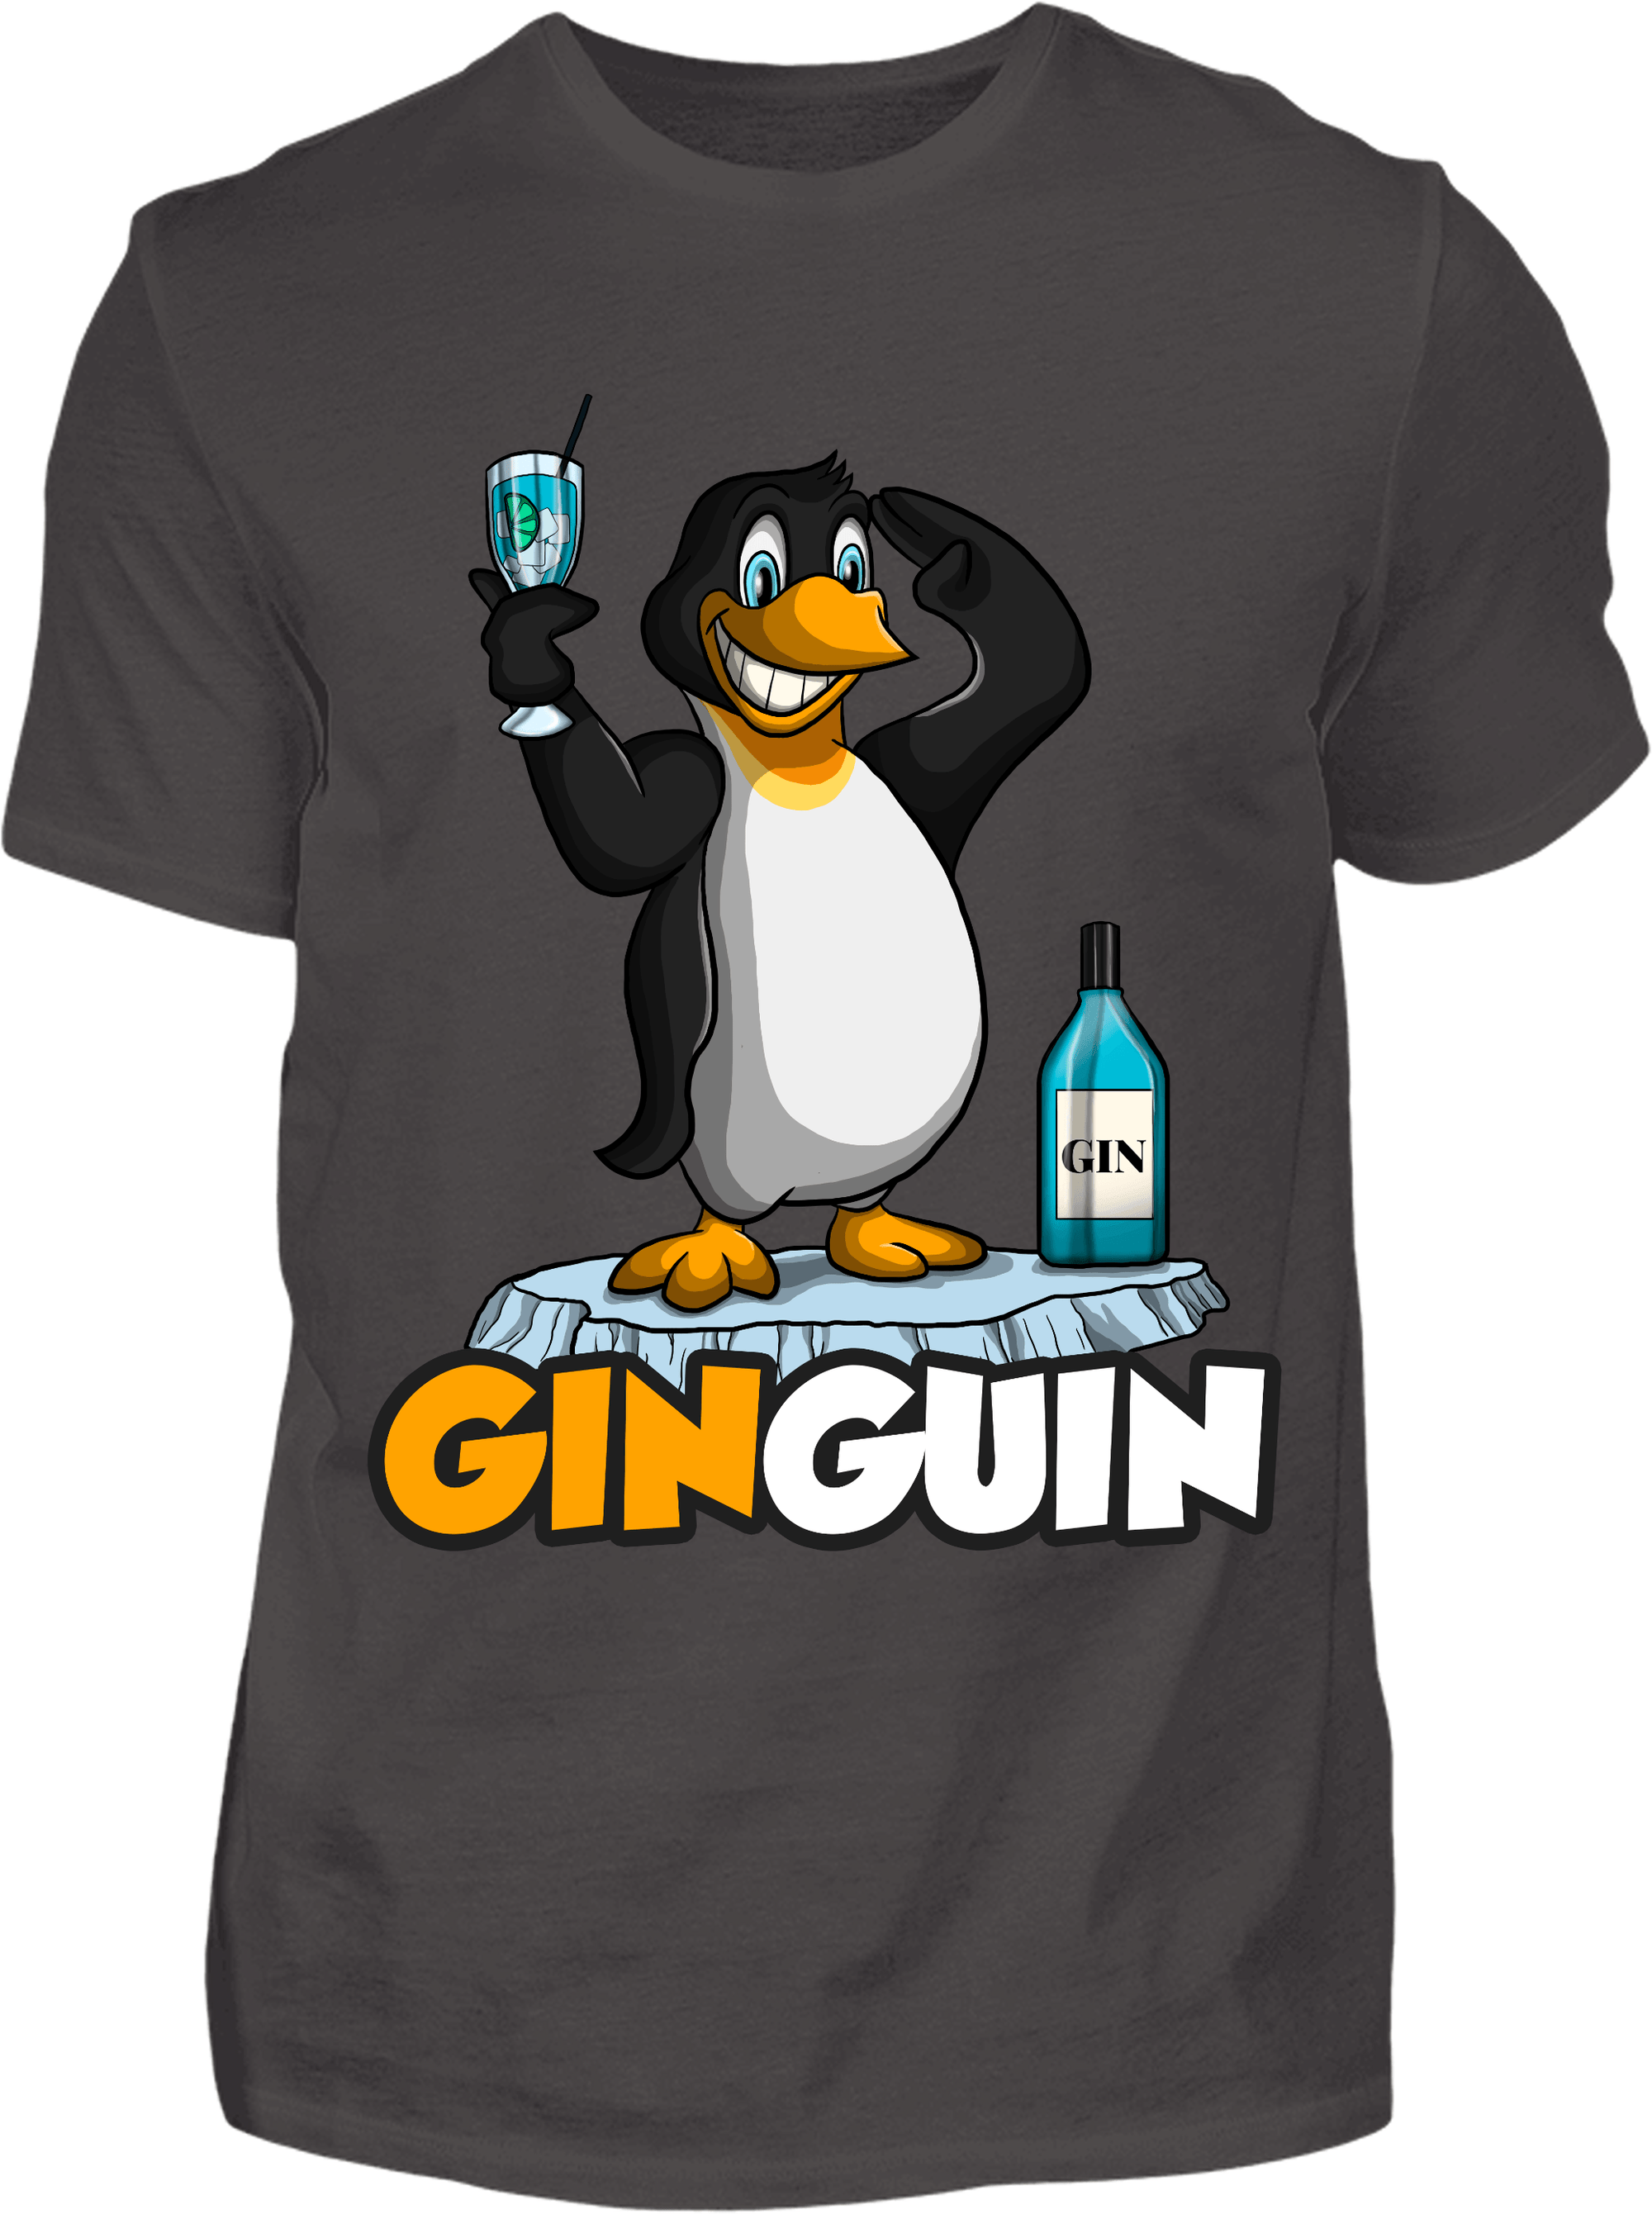 Ginguin T-Shirt - Kreisligahelden.de